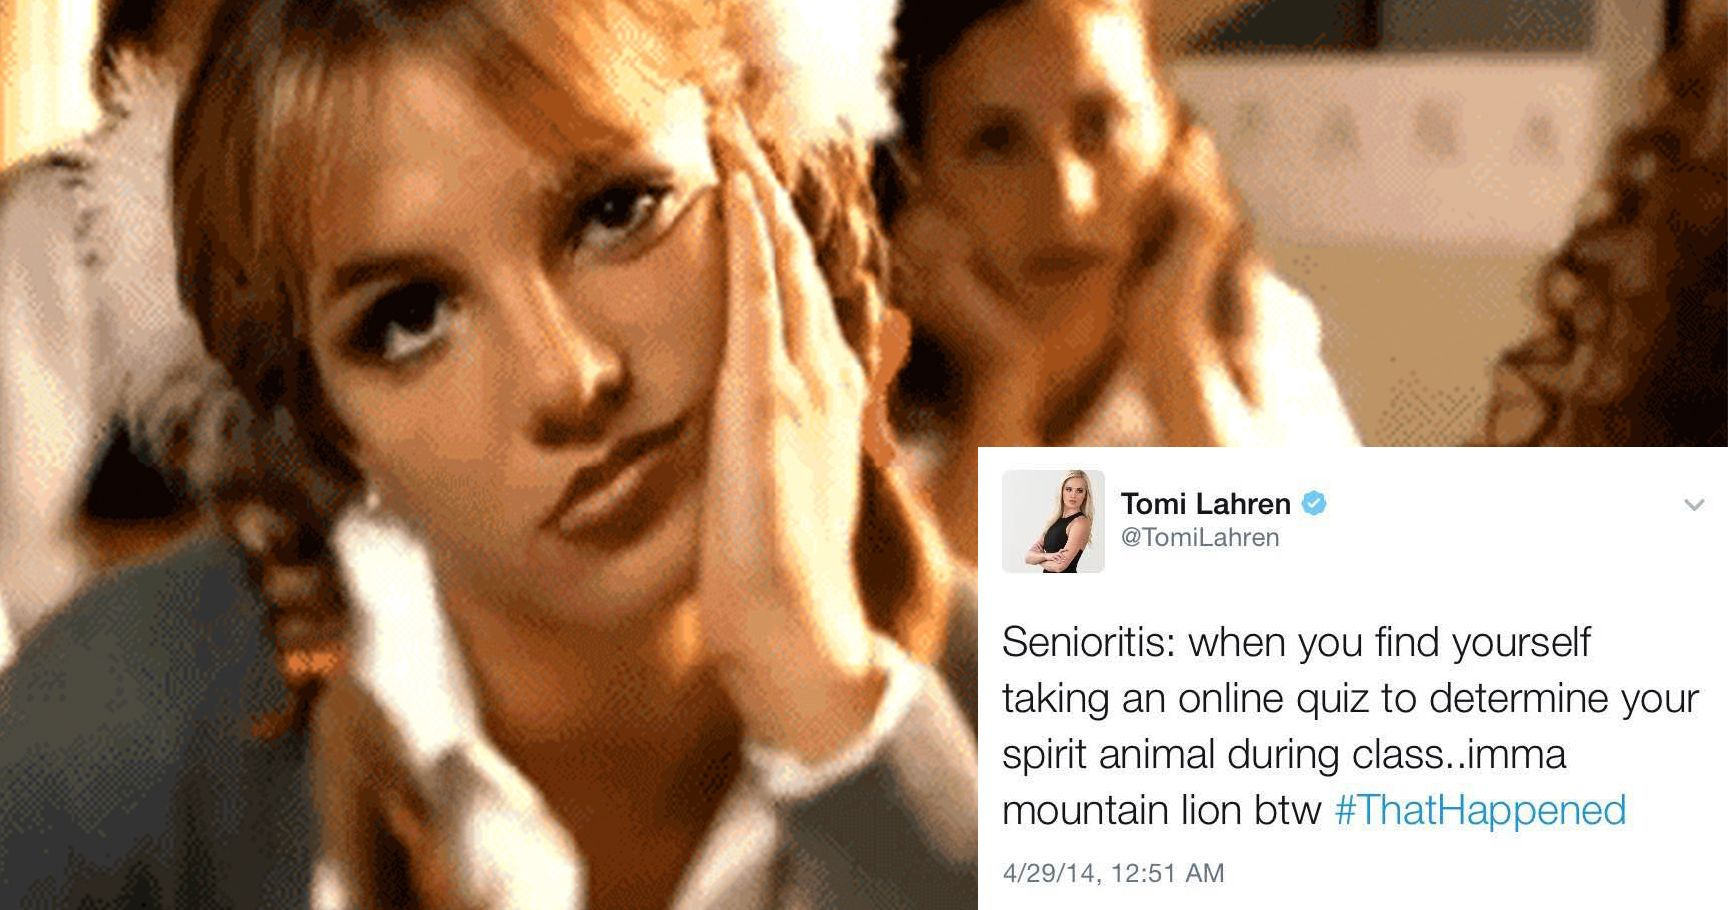 15 Tweets About 'Senioritis' That Are Almost Too Relatable